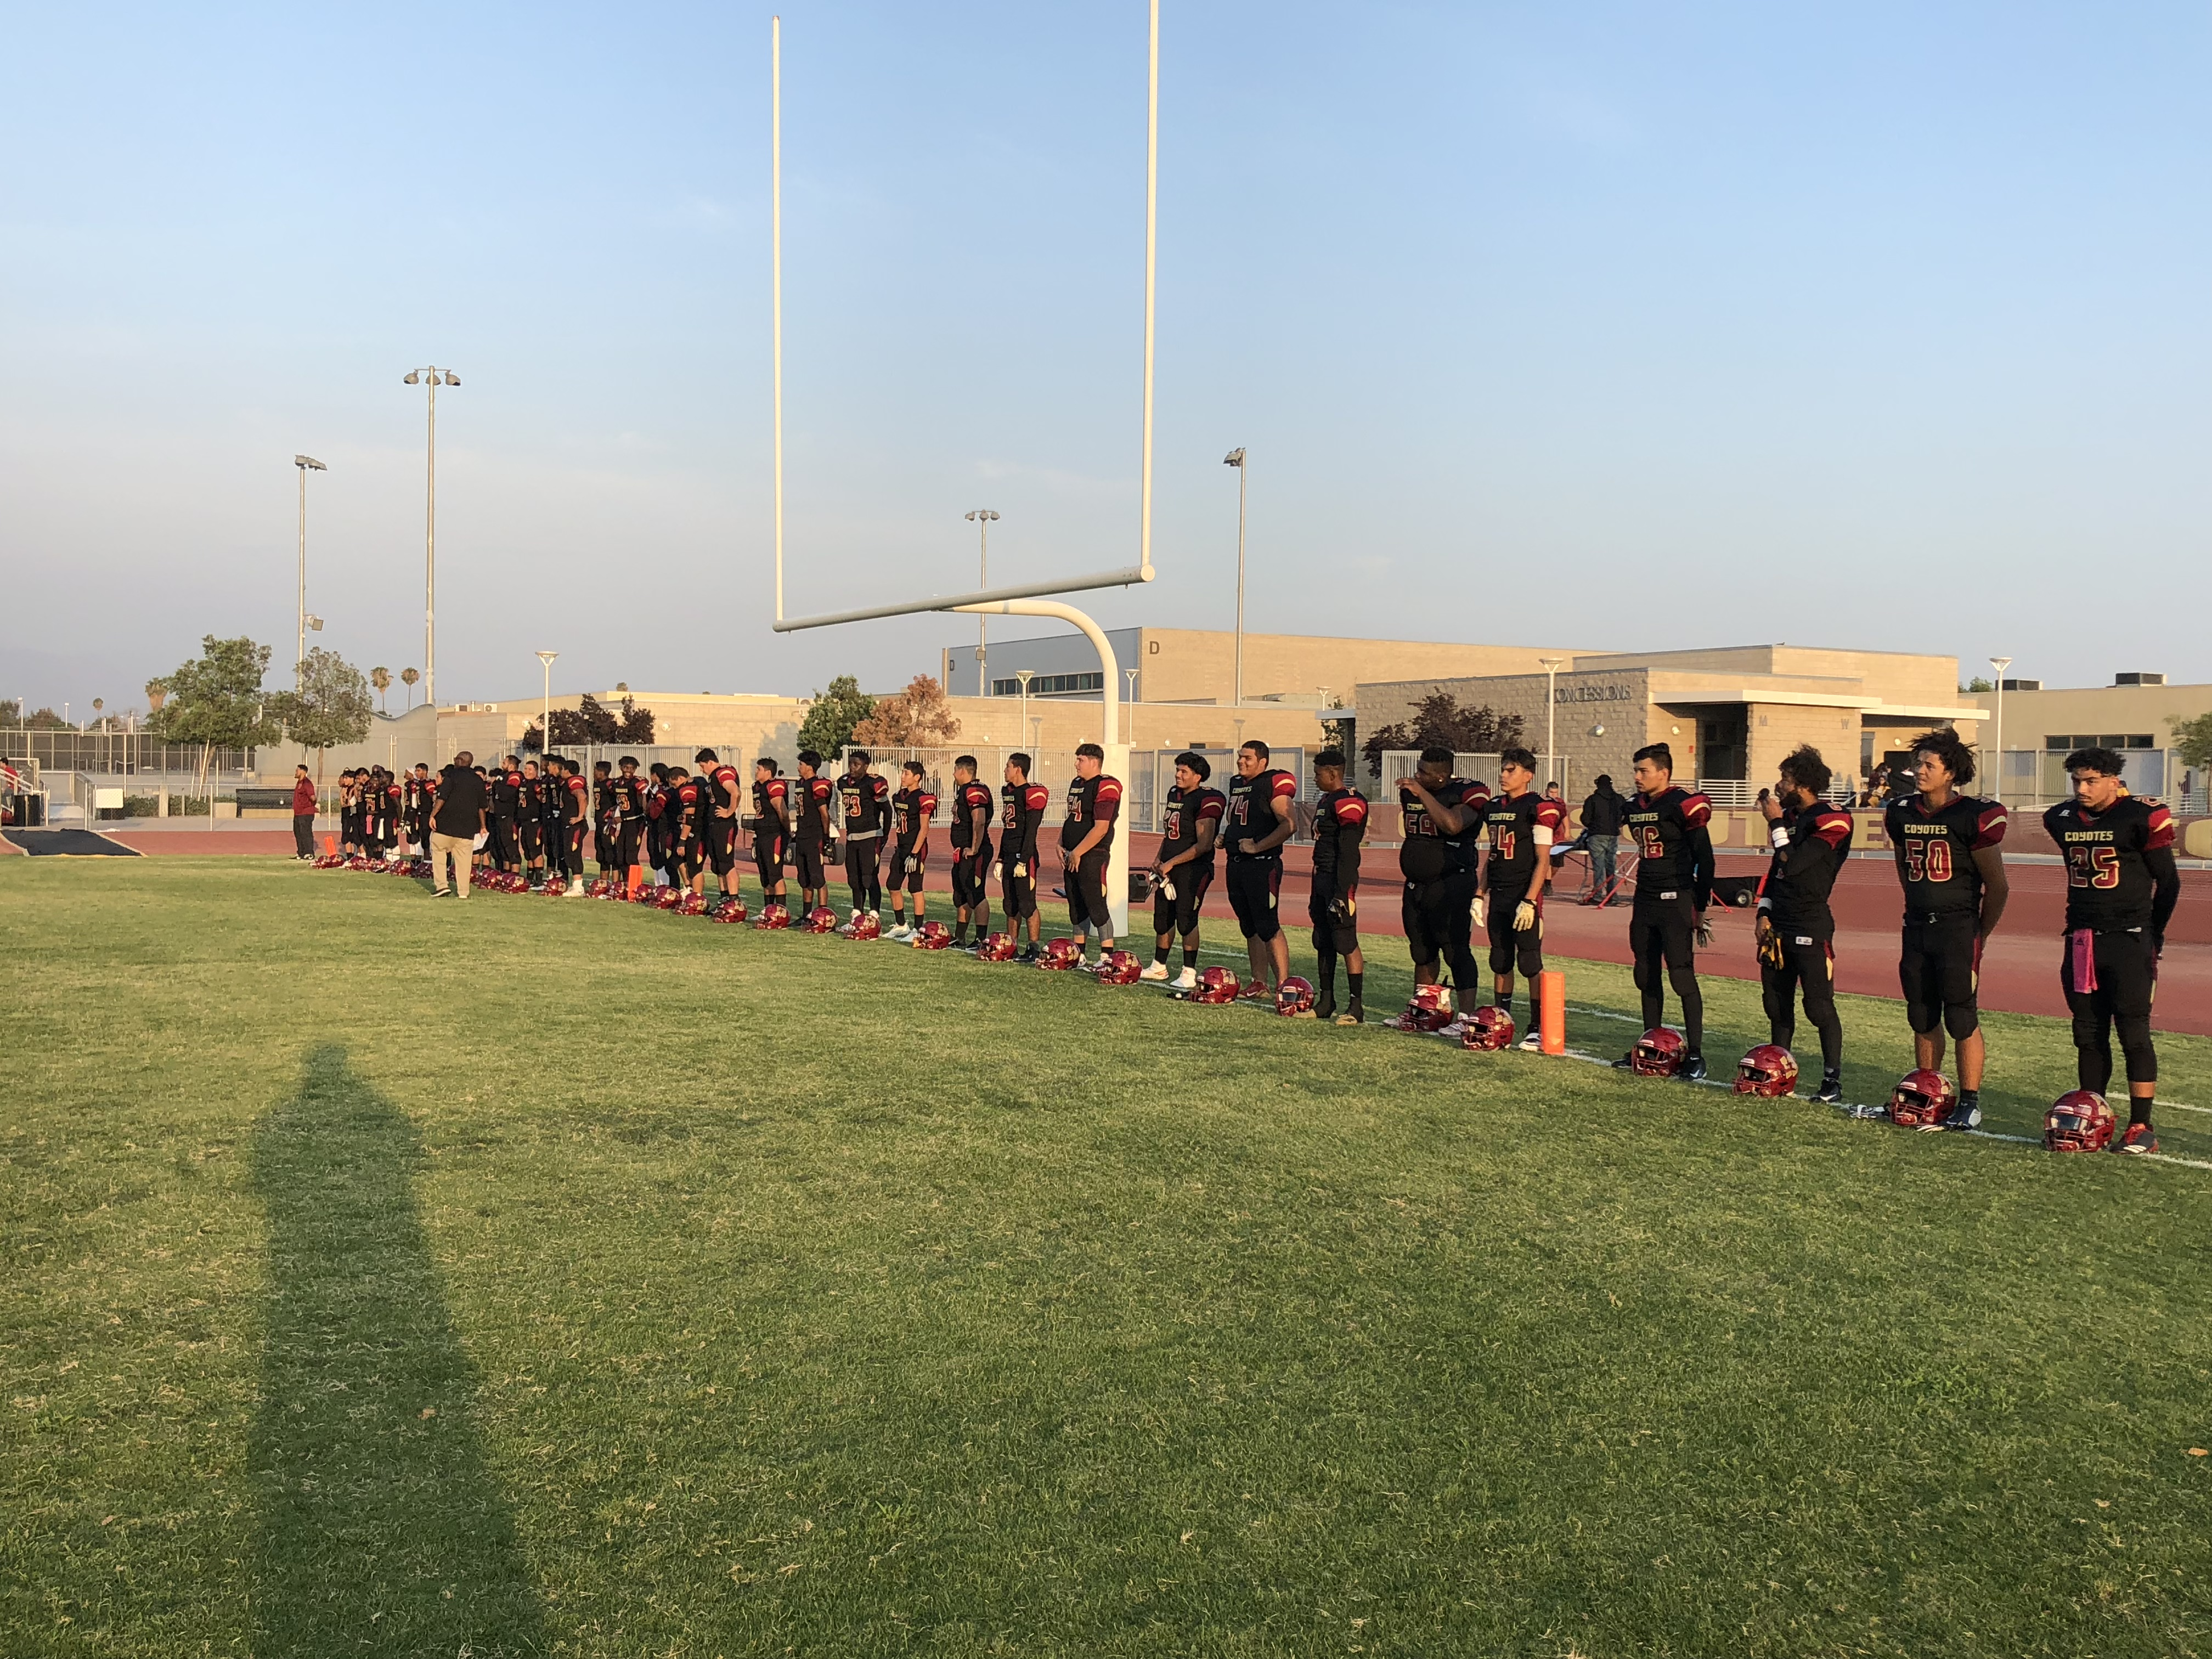 Coyote Ground Game Too Much for Garey